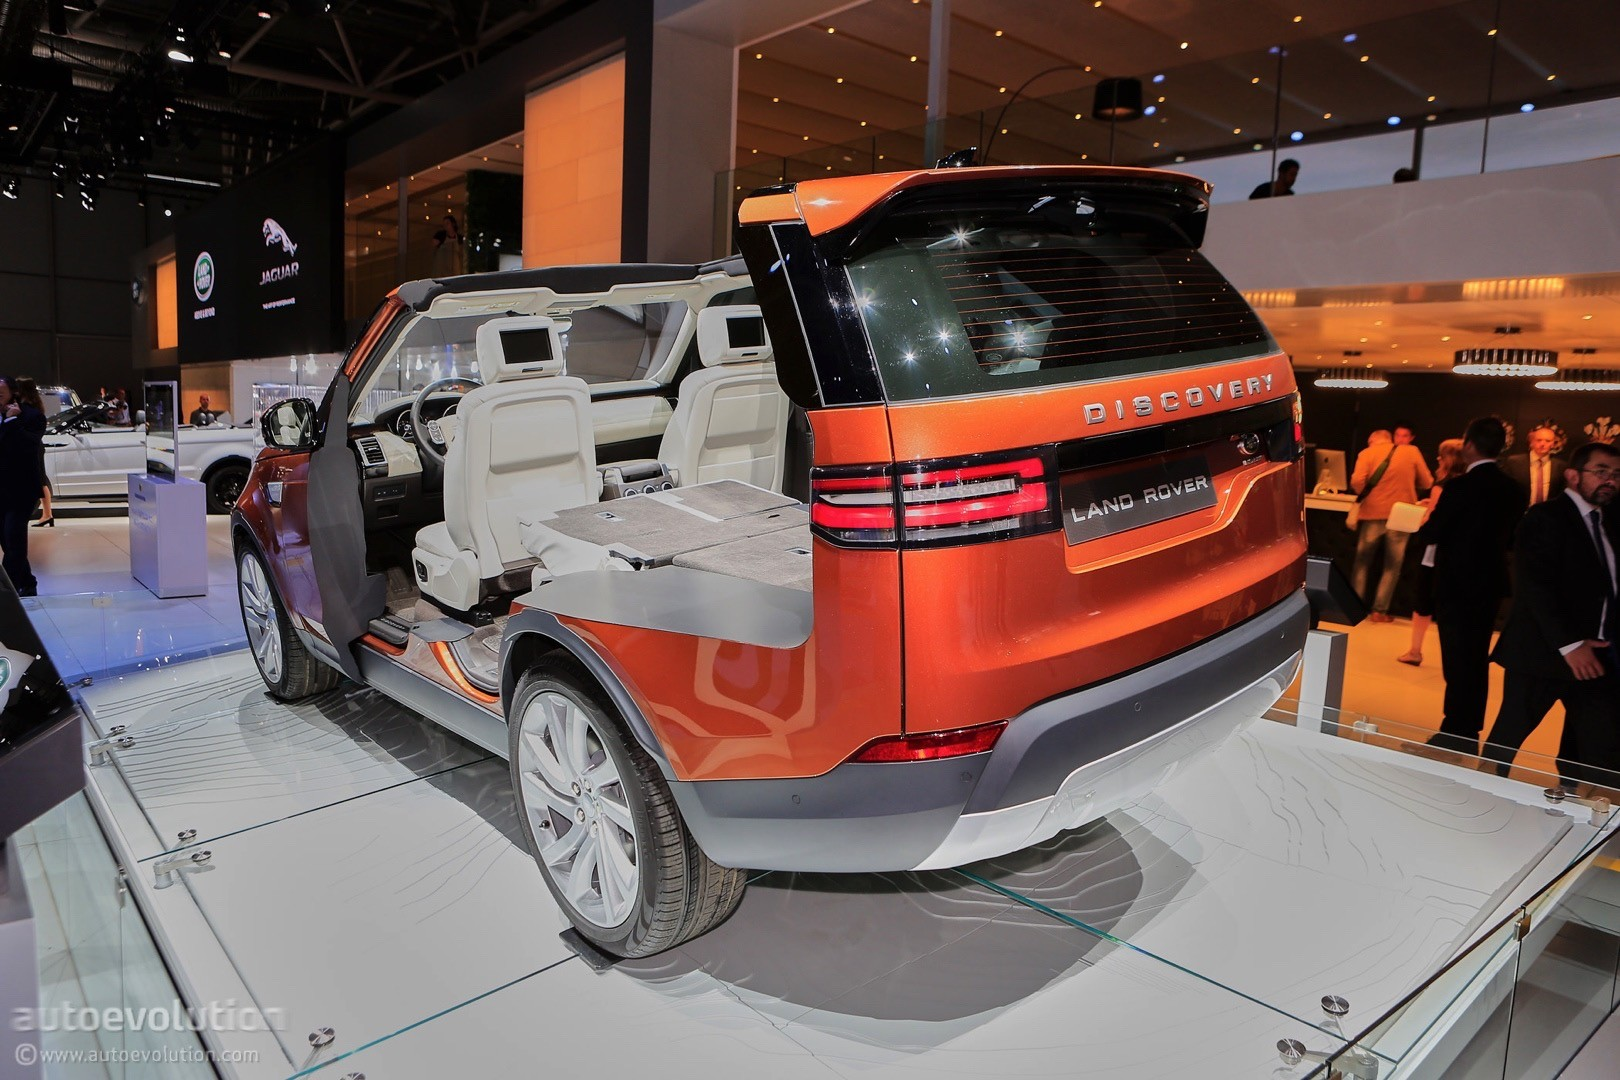 2017 land rover discovery 5 live at 2016 paris motor show